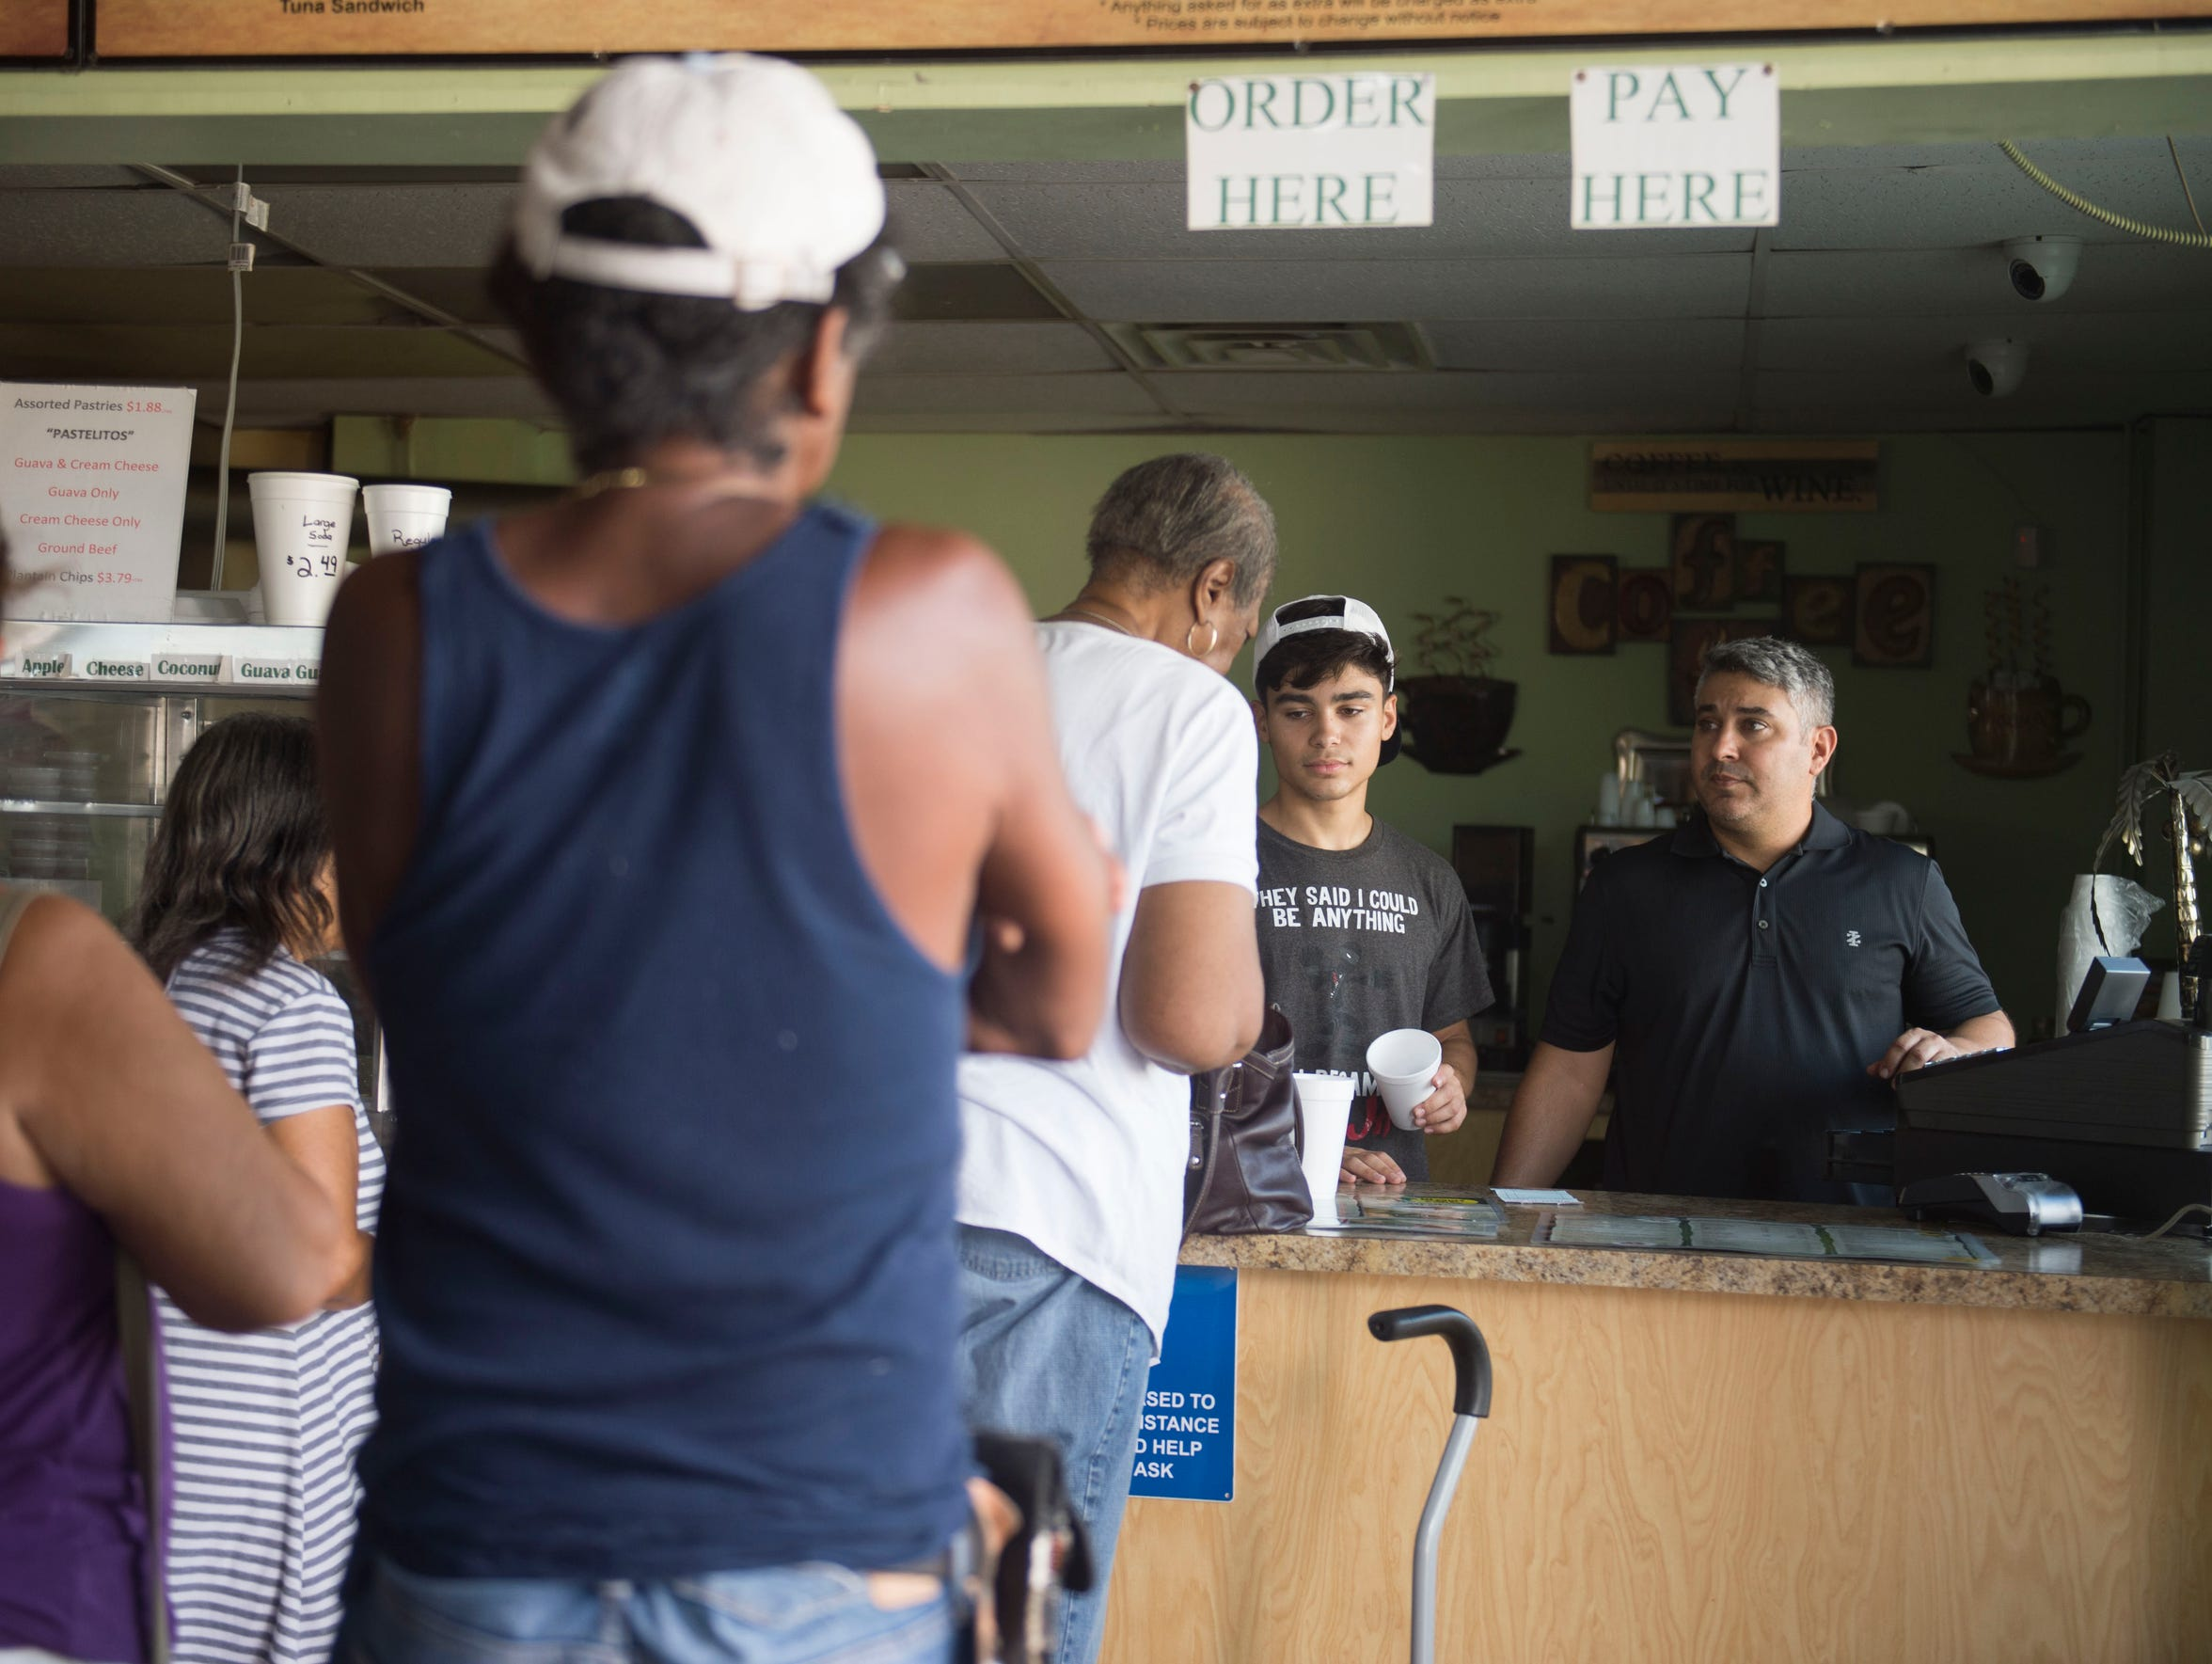 Mervis' Cafe owner Ivel Sierra (right) and son Ethan